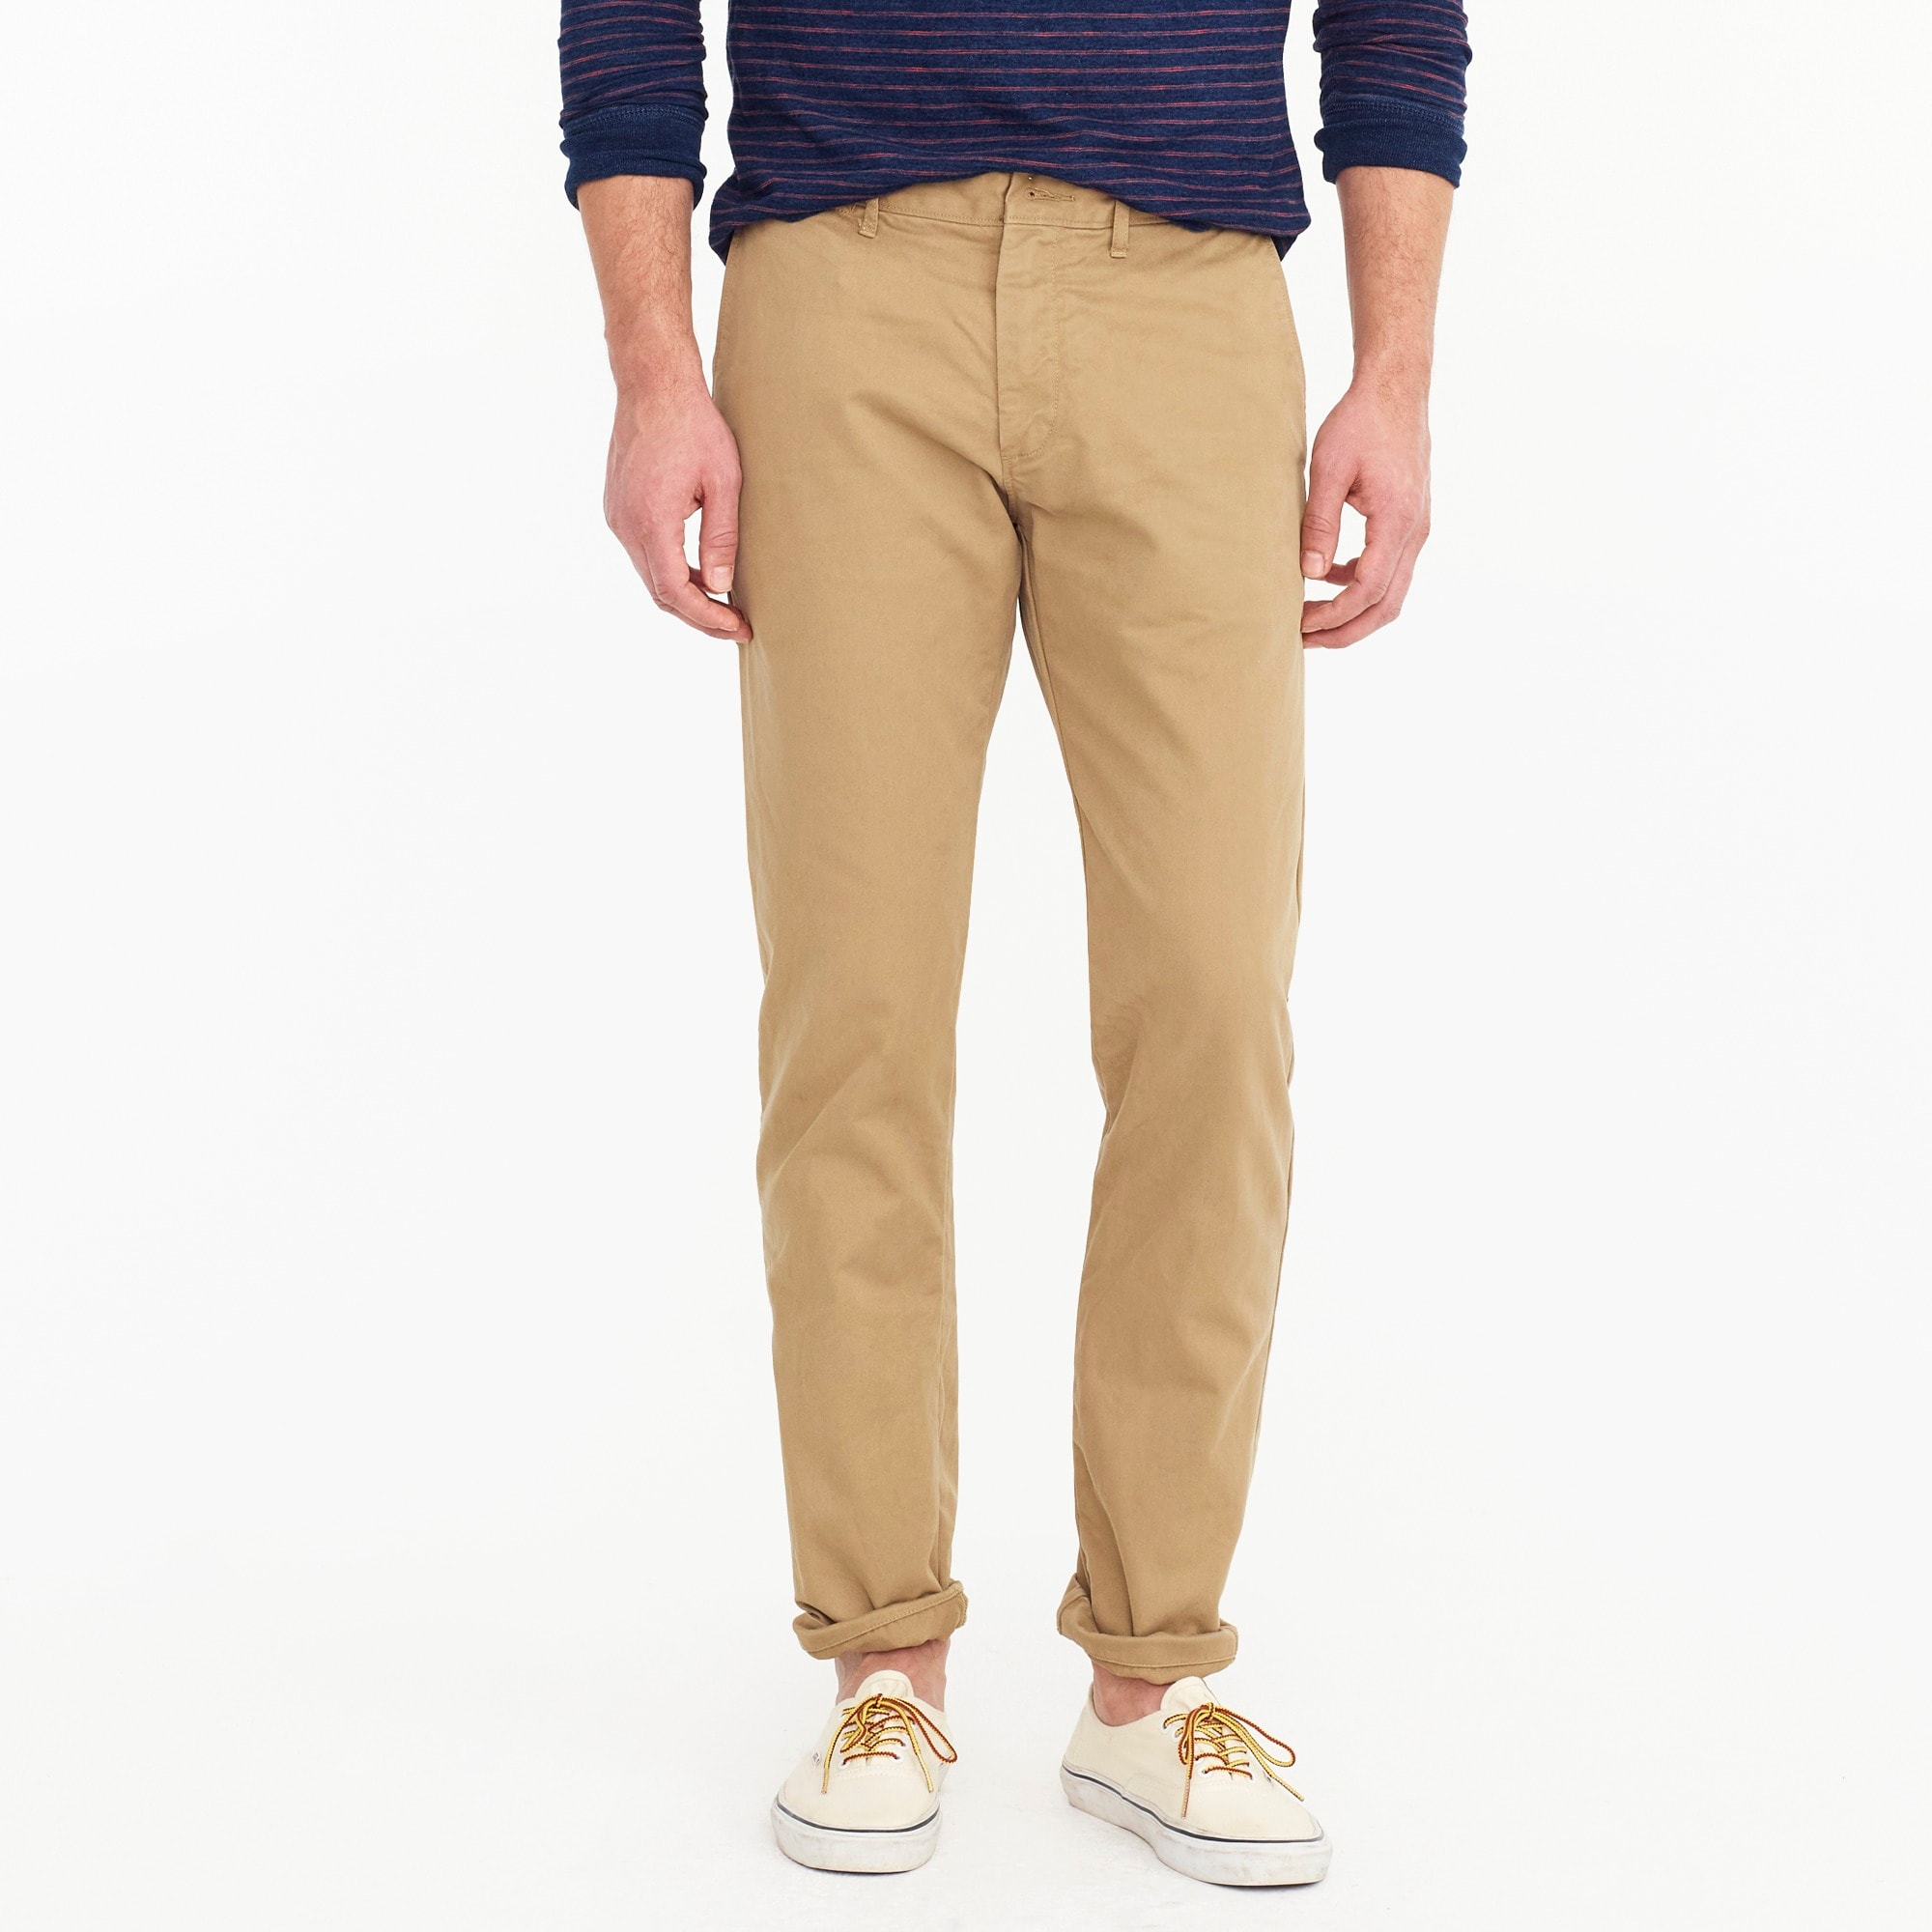 484 Slim-fit pant in broken-in chino men pants c